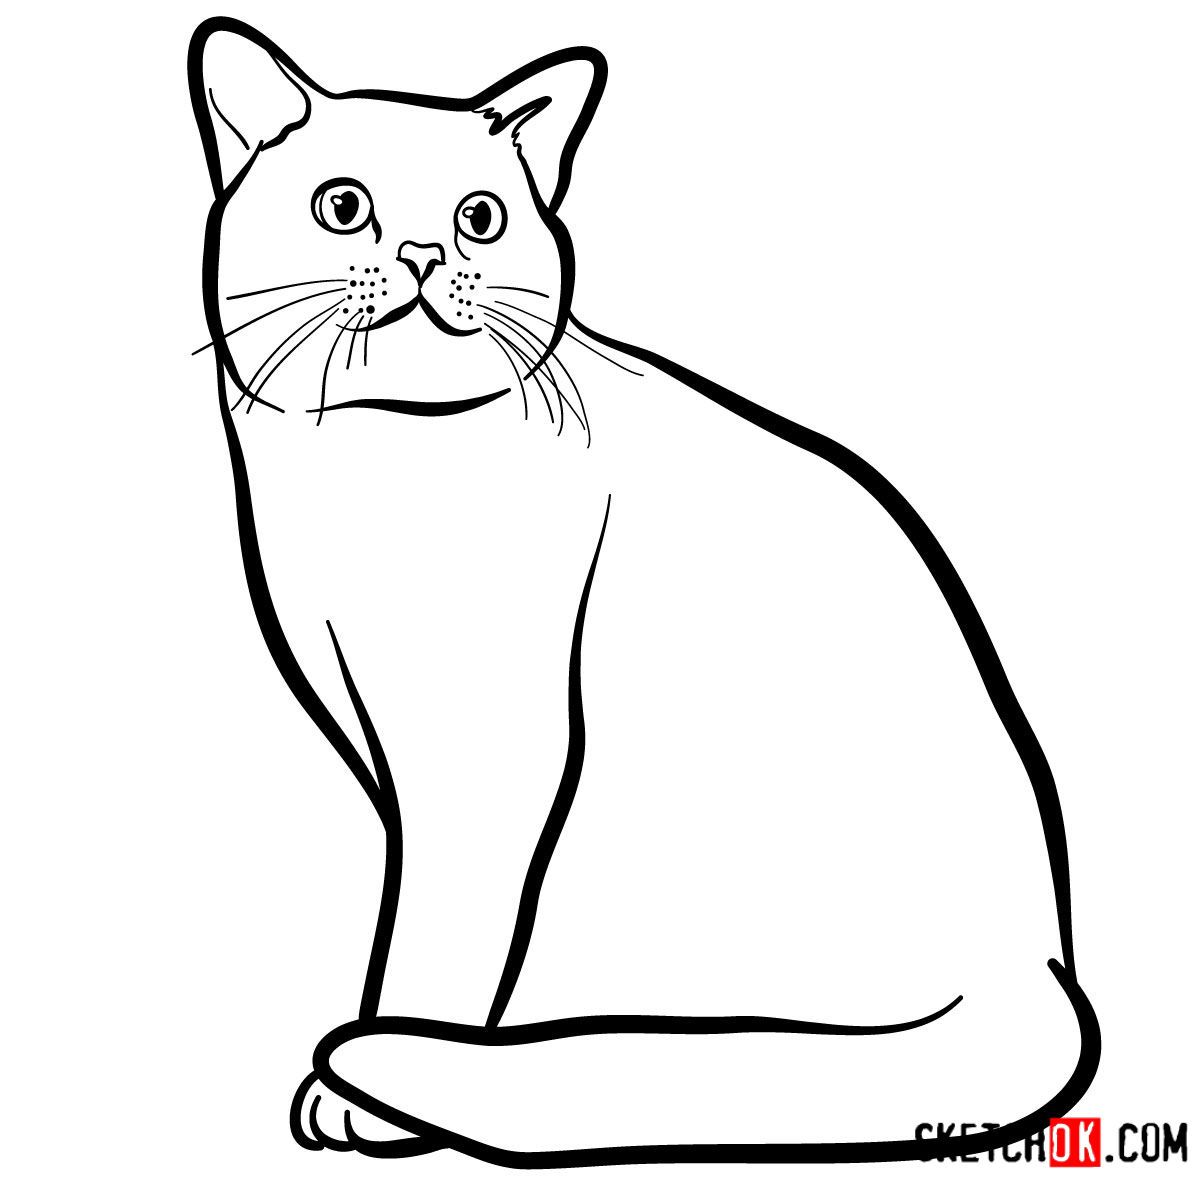 How to draw the American Shorthair cat